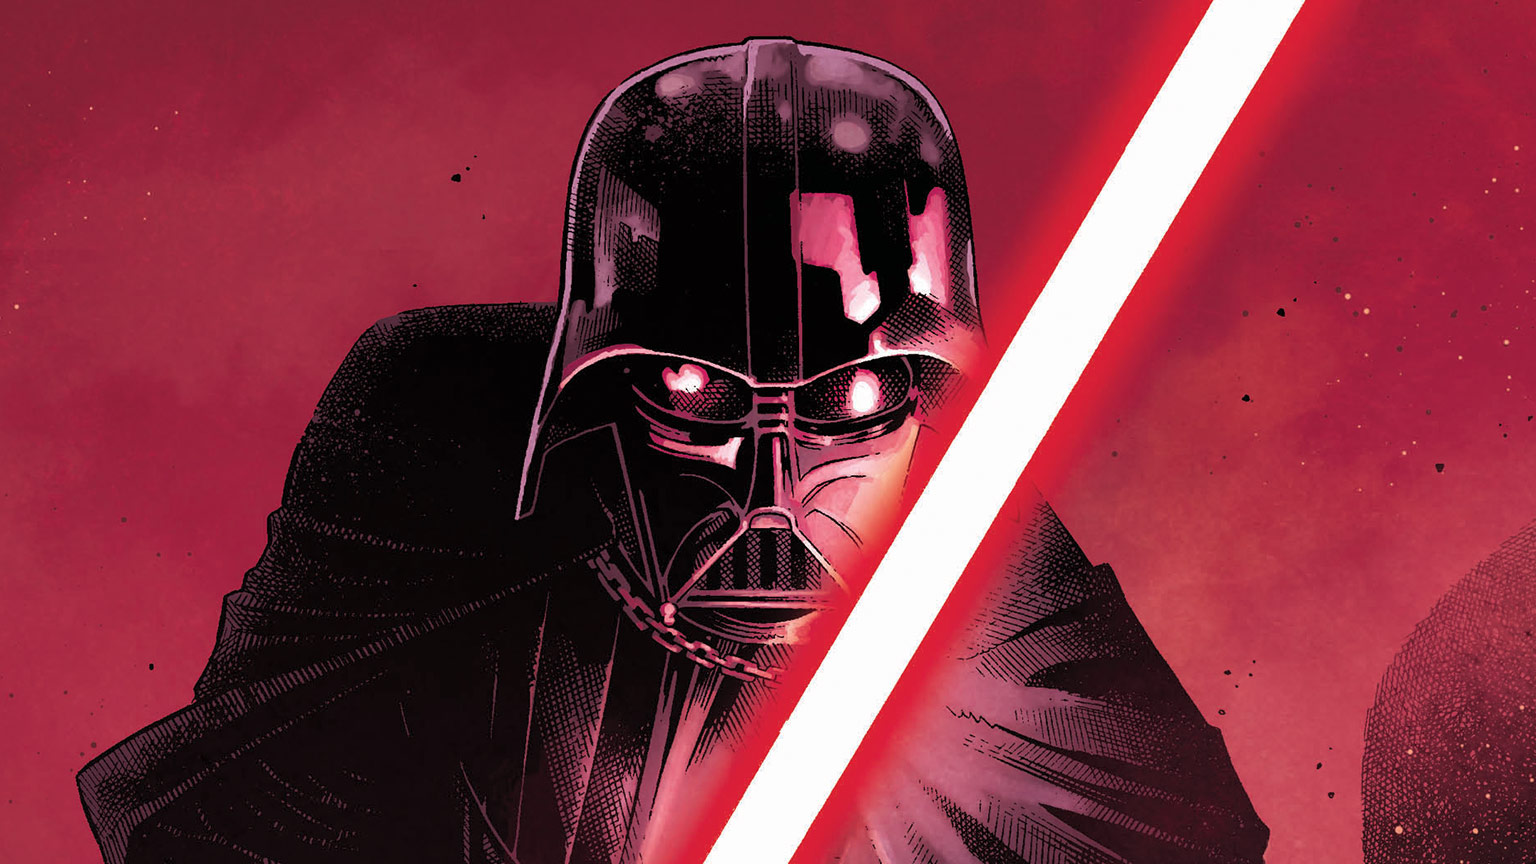 In Marvel's New Darth Vader Series, We Will See The Sith